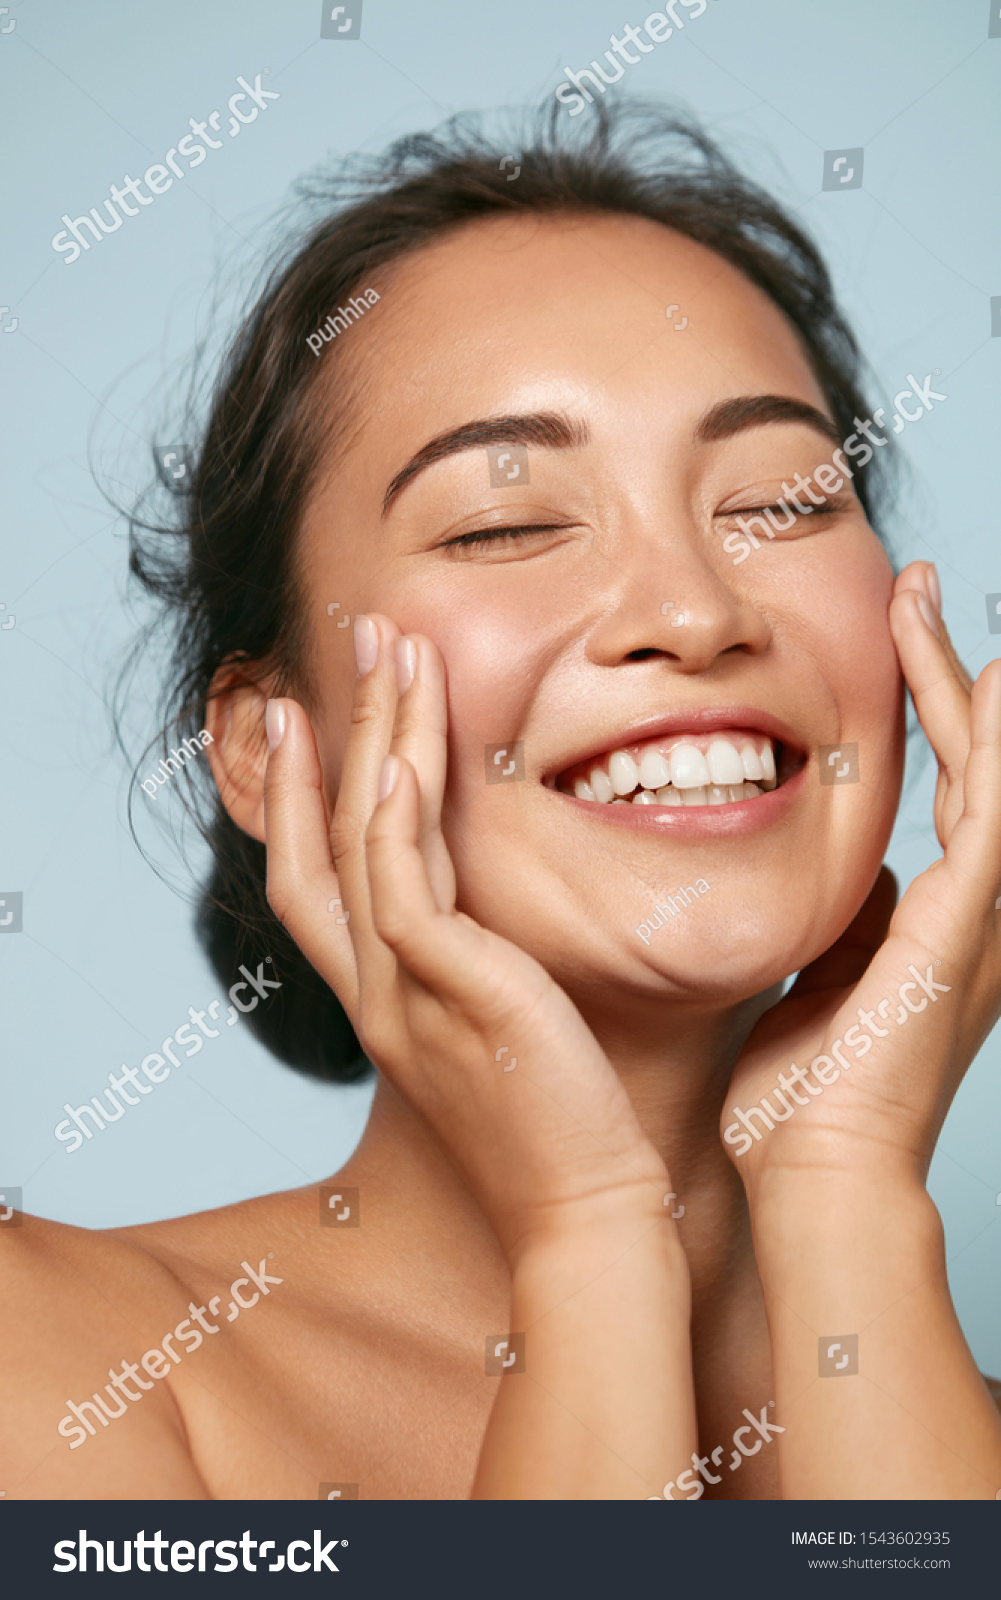 Skin care. Woman with beauty face touching healthy facial skin portrait. Beautiful smiling asian girl model with natural makeup touching glowing hydrated skin on blue background closeup #1543602935